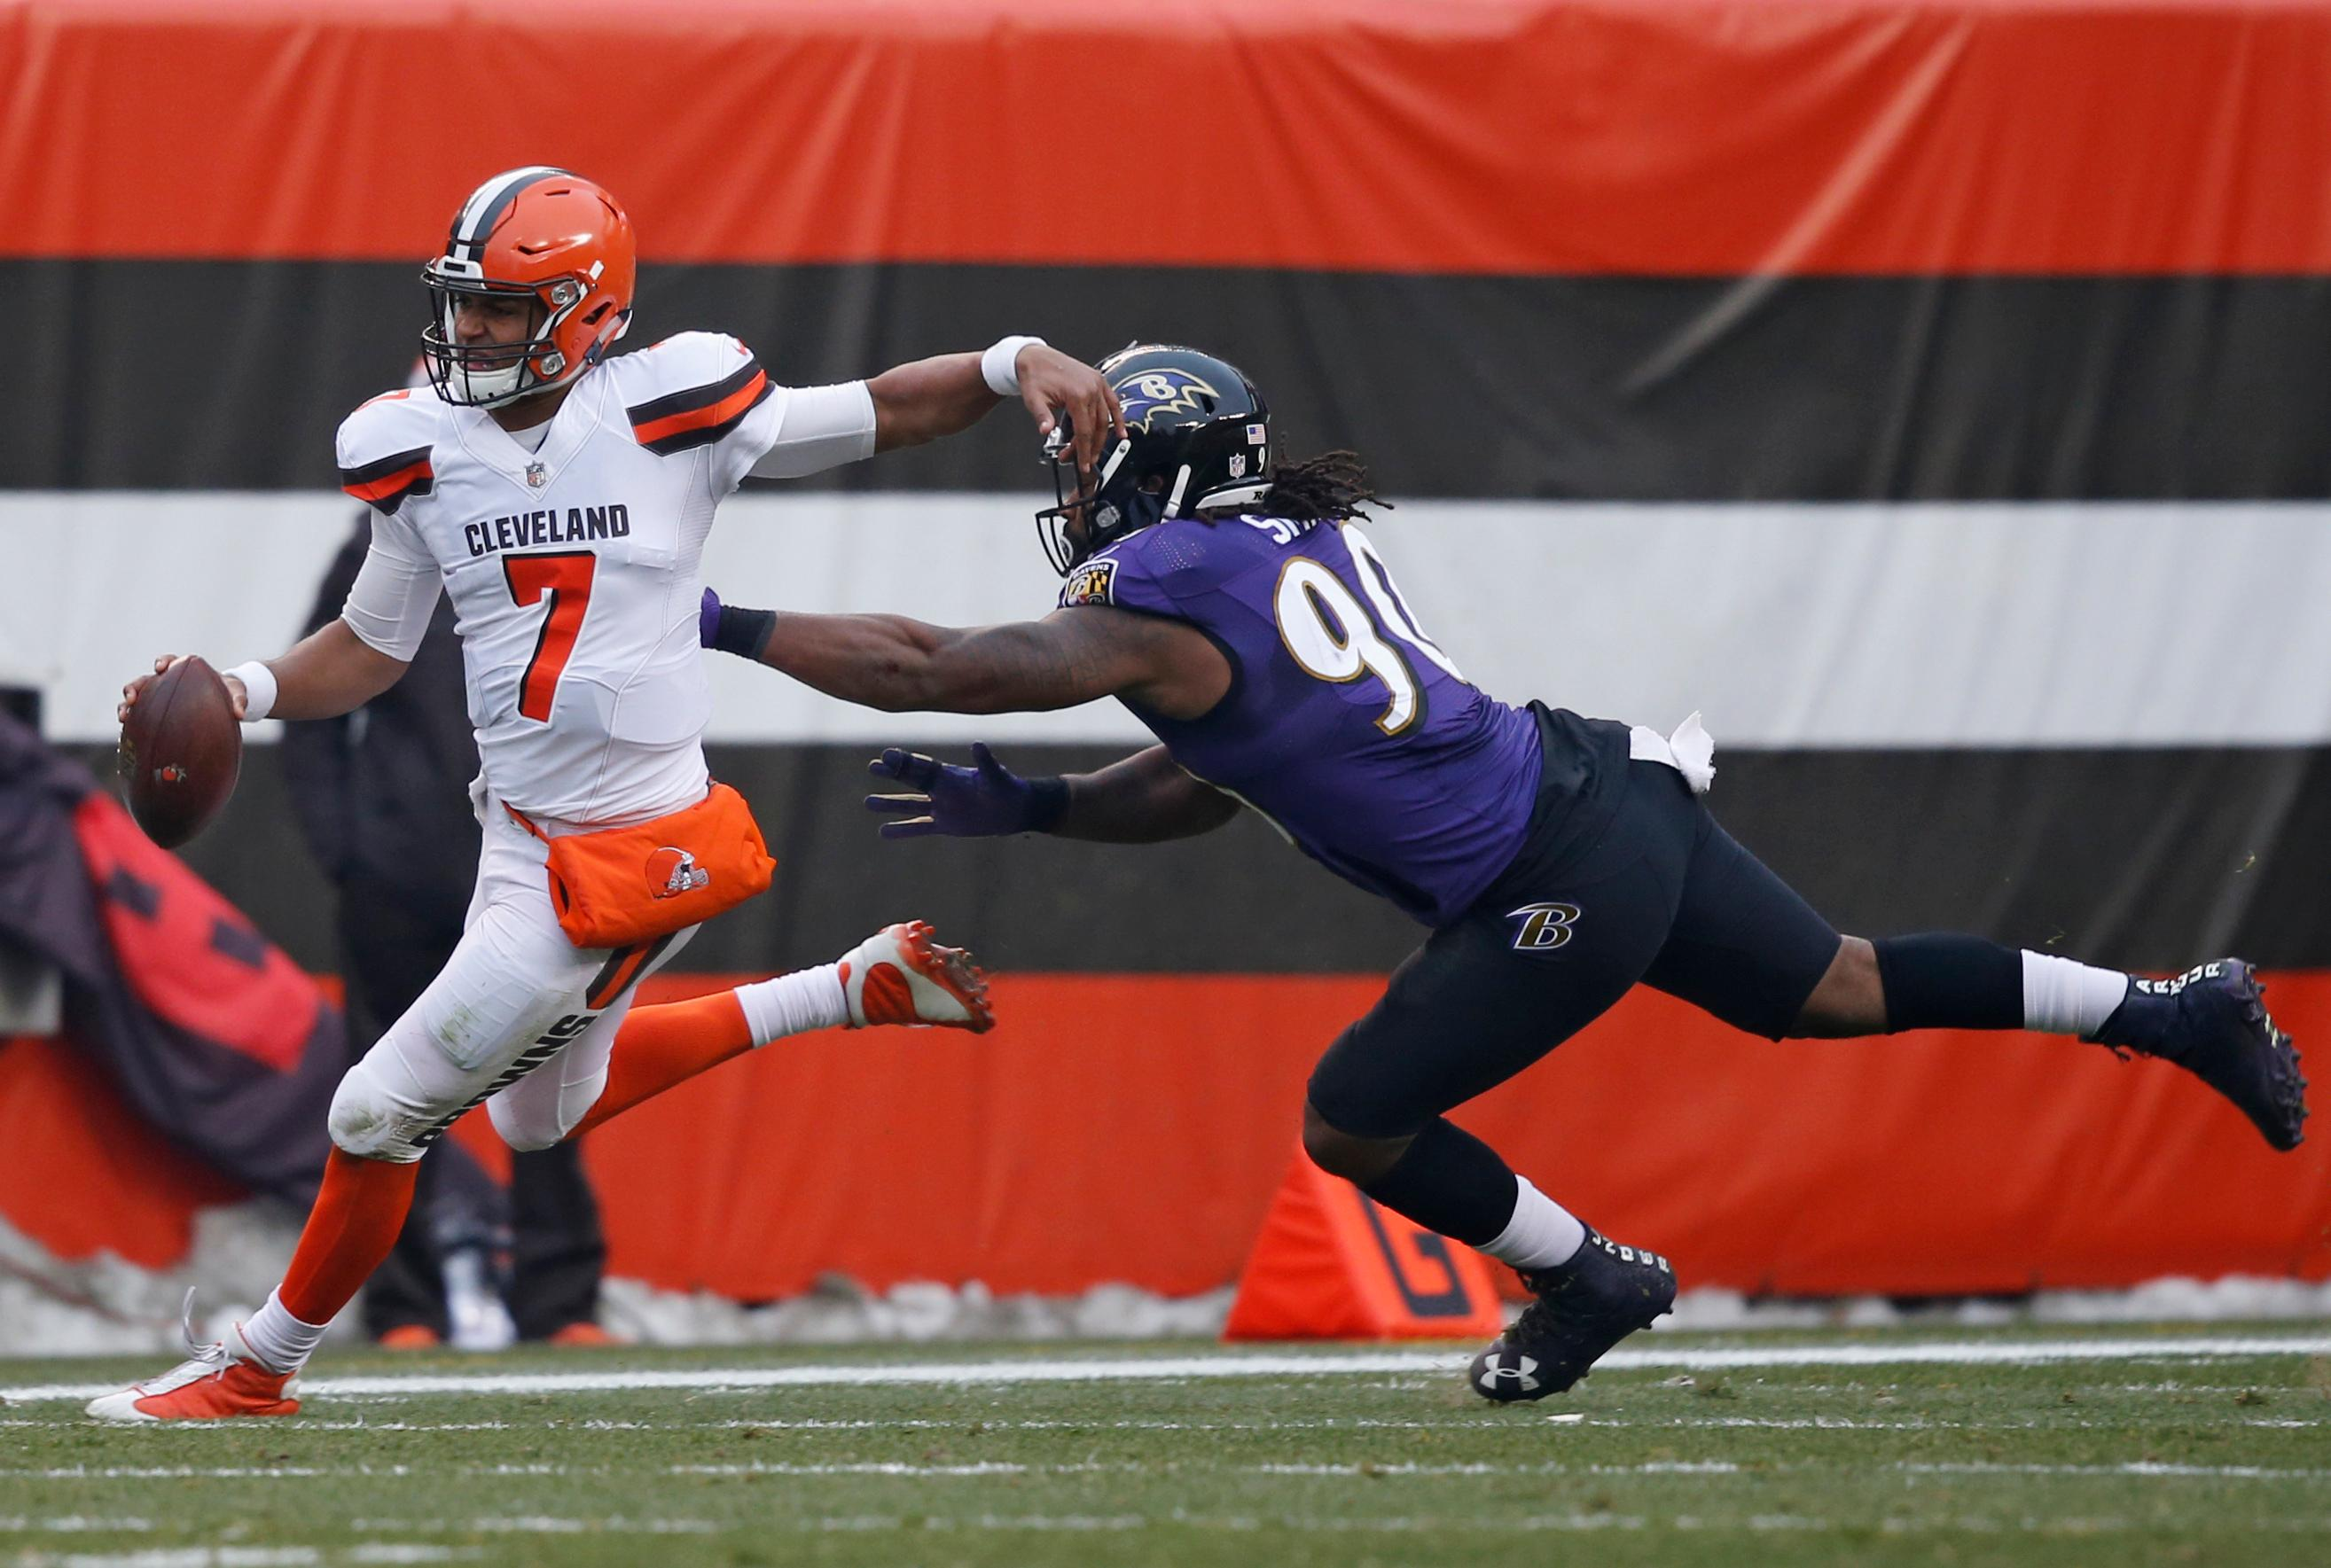 Cleveland Browns quarterback DeShone Kizer (7) tries to avoid Baltimore Ravens defensive end Za'Darius Smith (90) during the second half of an NFL football game, Sunday, Dec. 17, 2017, in Cleveland. (AP Photo/Ron Schwane)